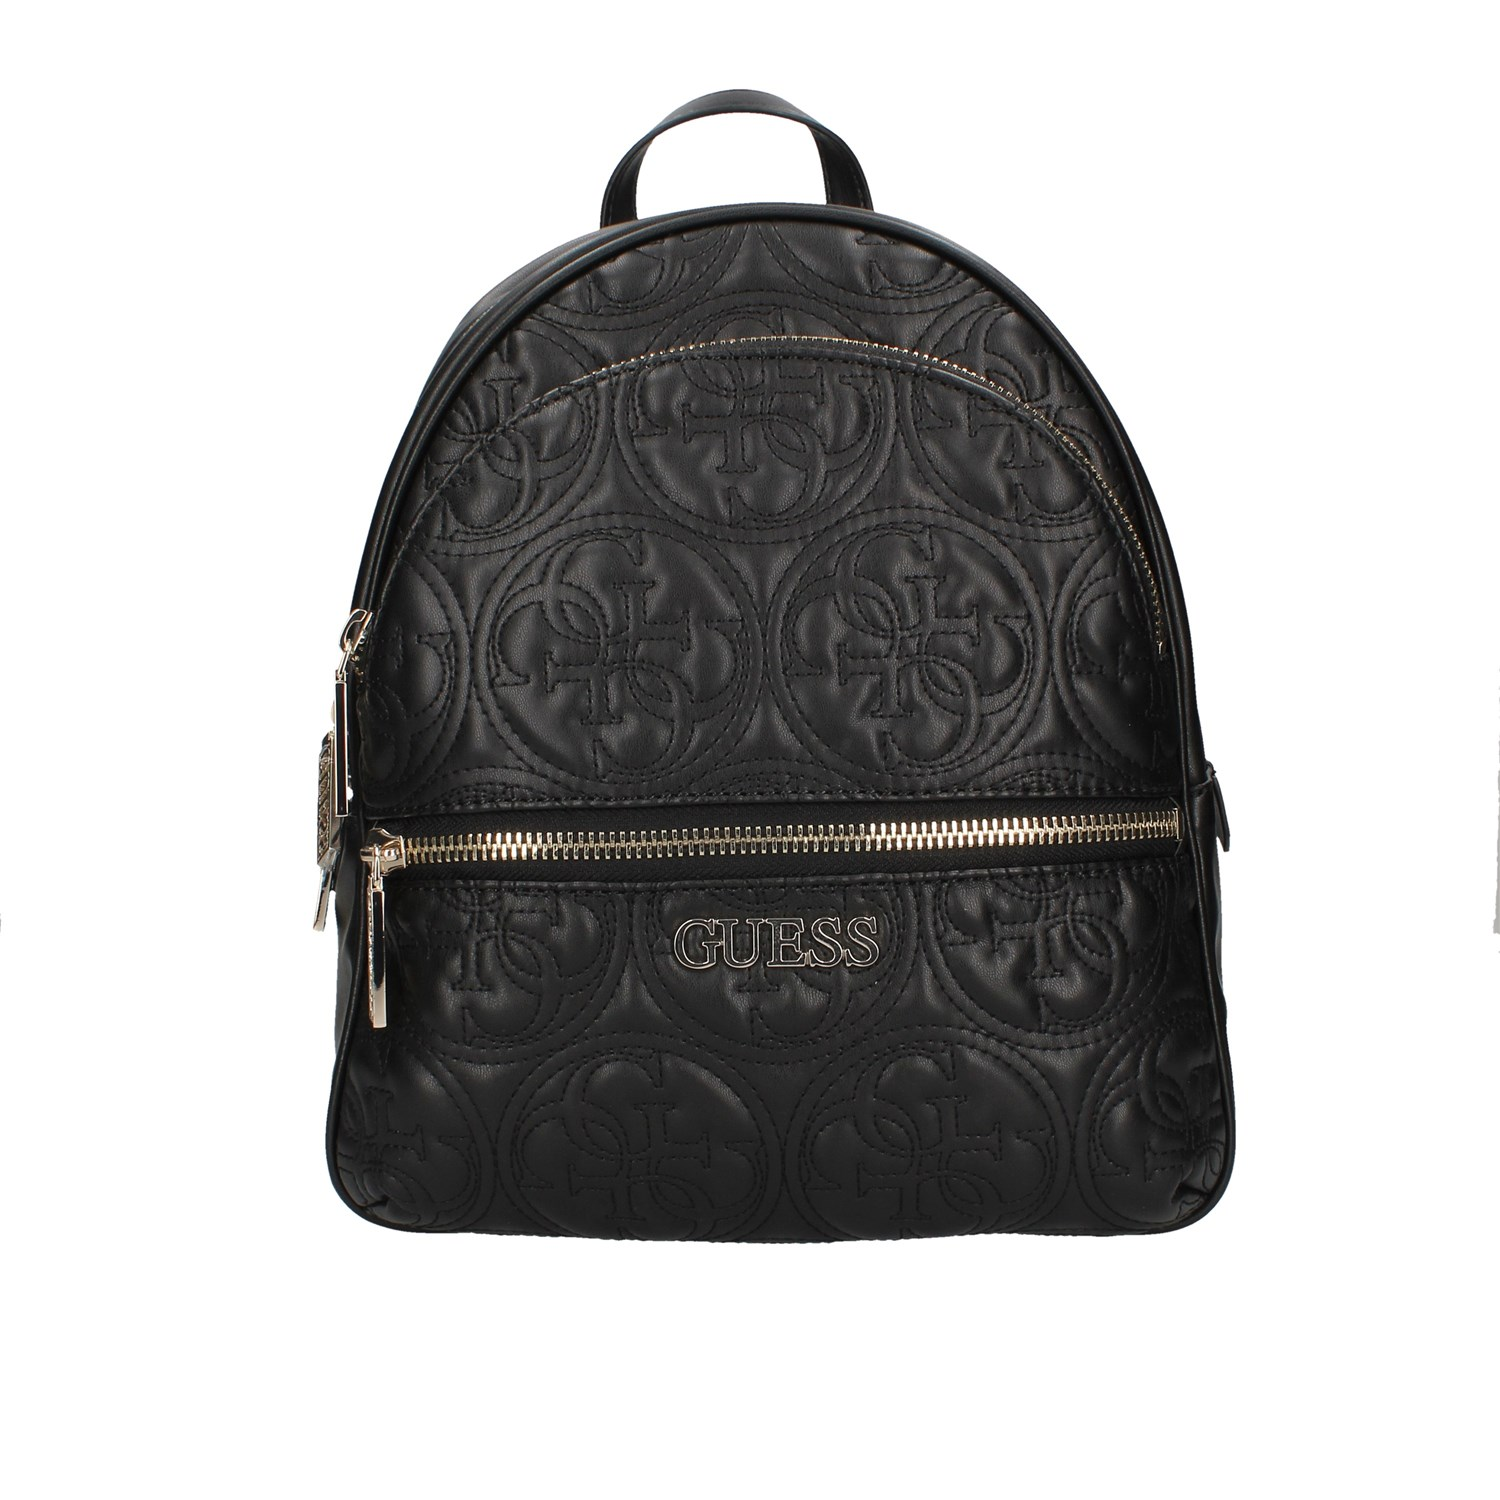 Bag backpack Guess woman eco leather black writing logo white shoulder straps